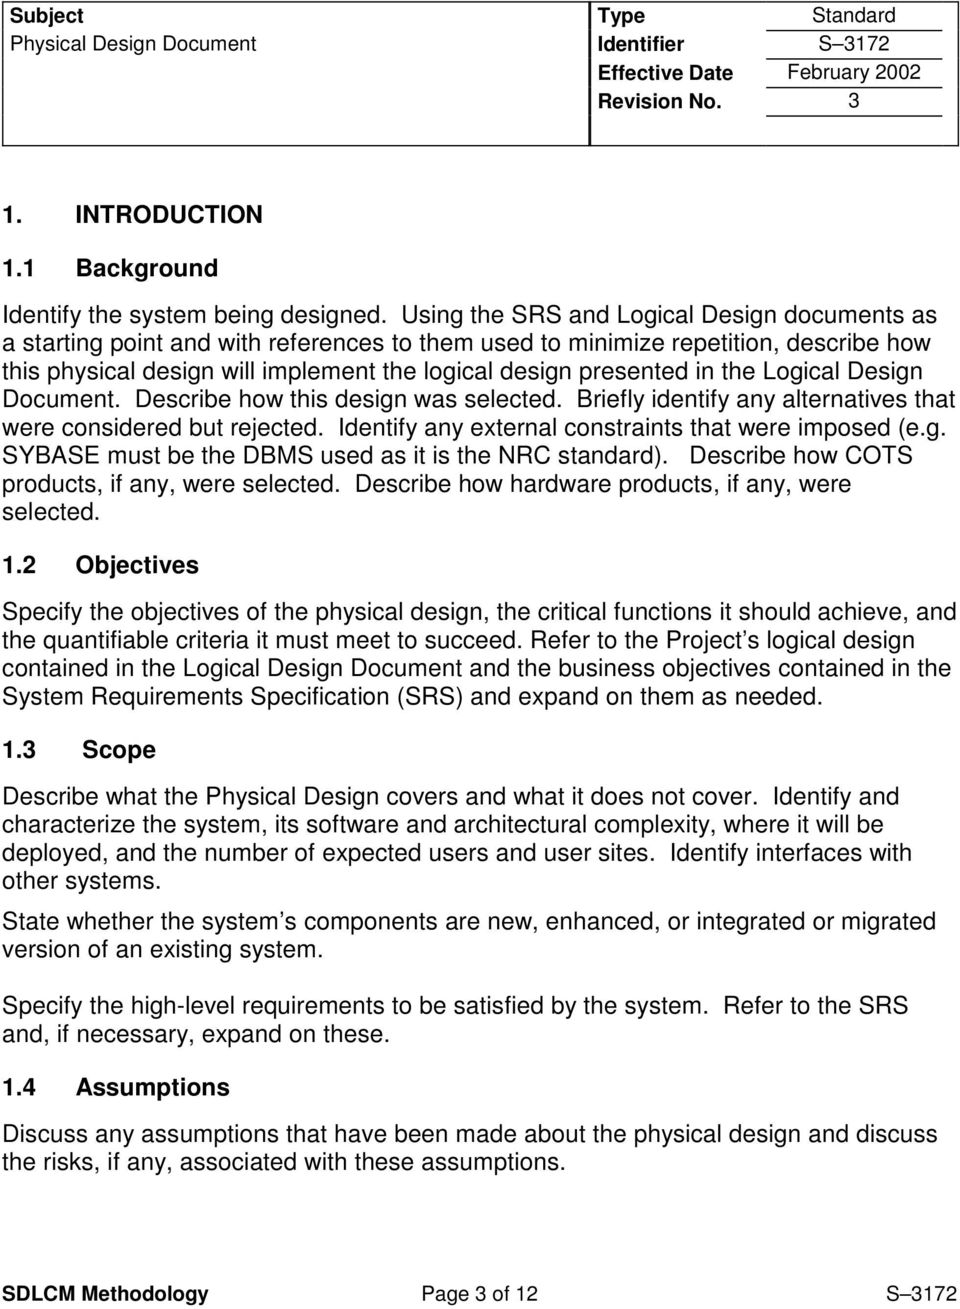 in the Logical Design Document. Describe how this design was selected. Briefly identify any alternatives that were considered but rejected. Identify any external constraints that were imposed (e.g. SYBASE must be the DBMS used as it is the NRC standard).